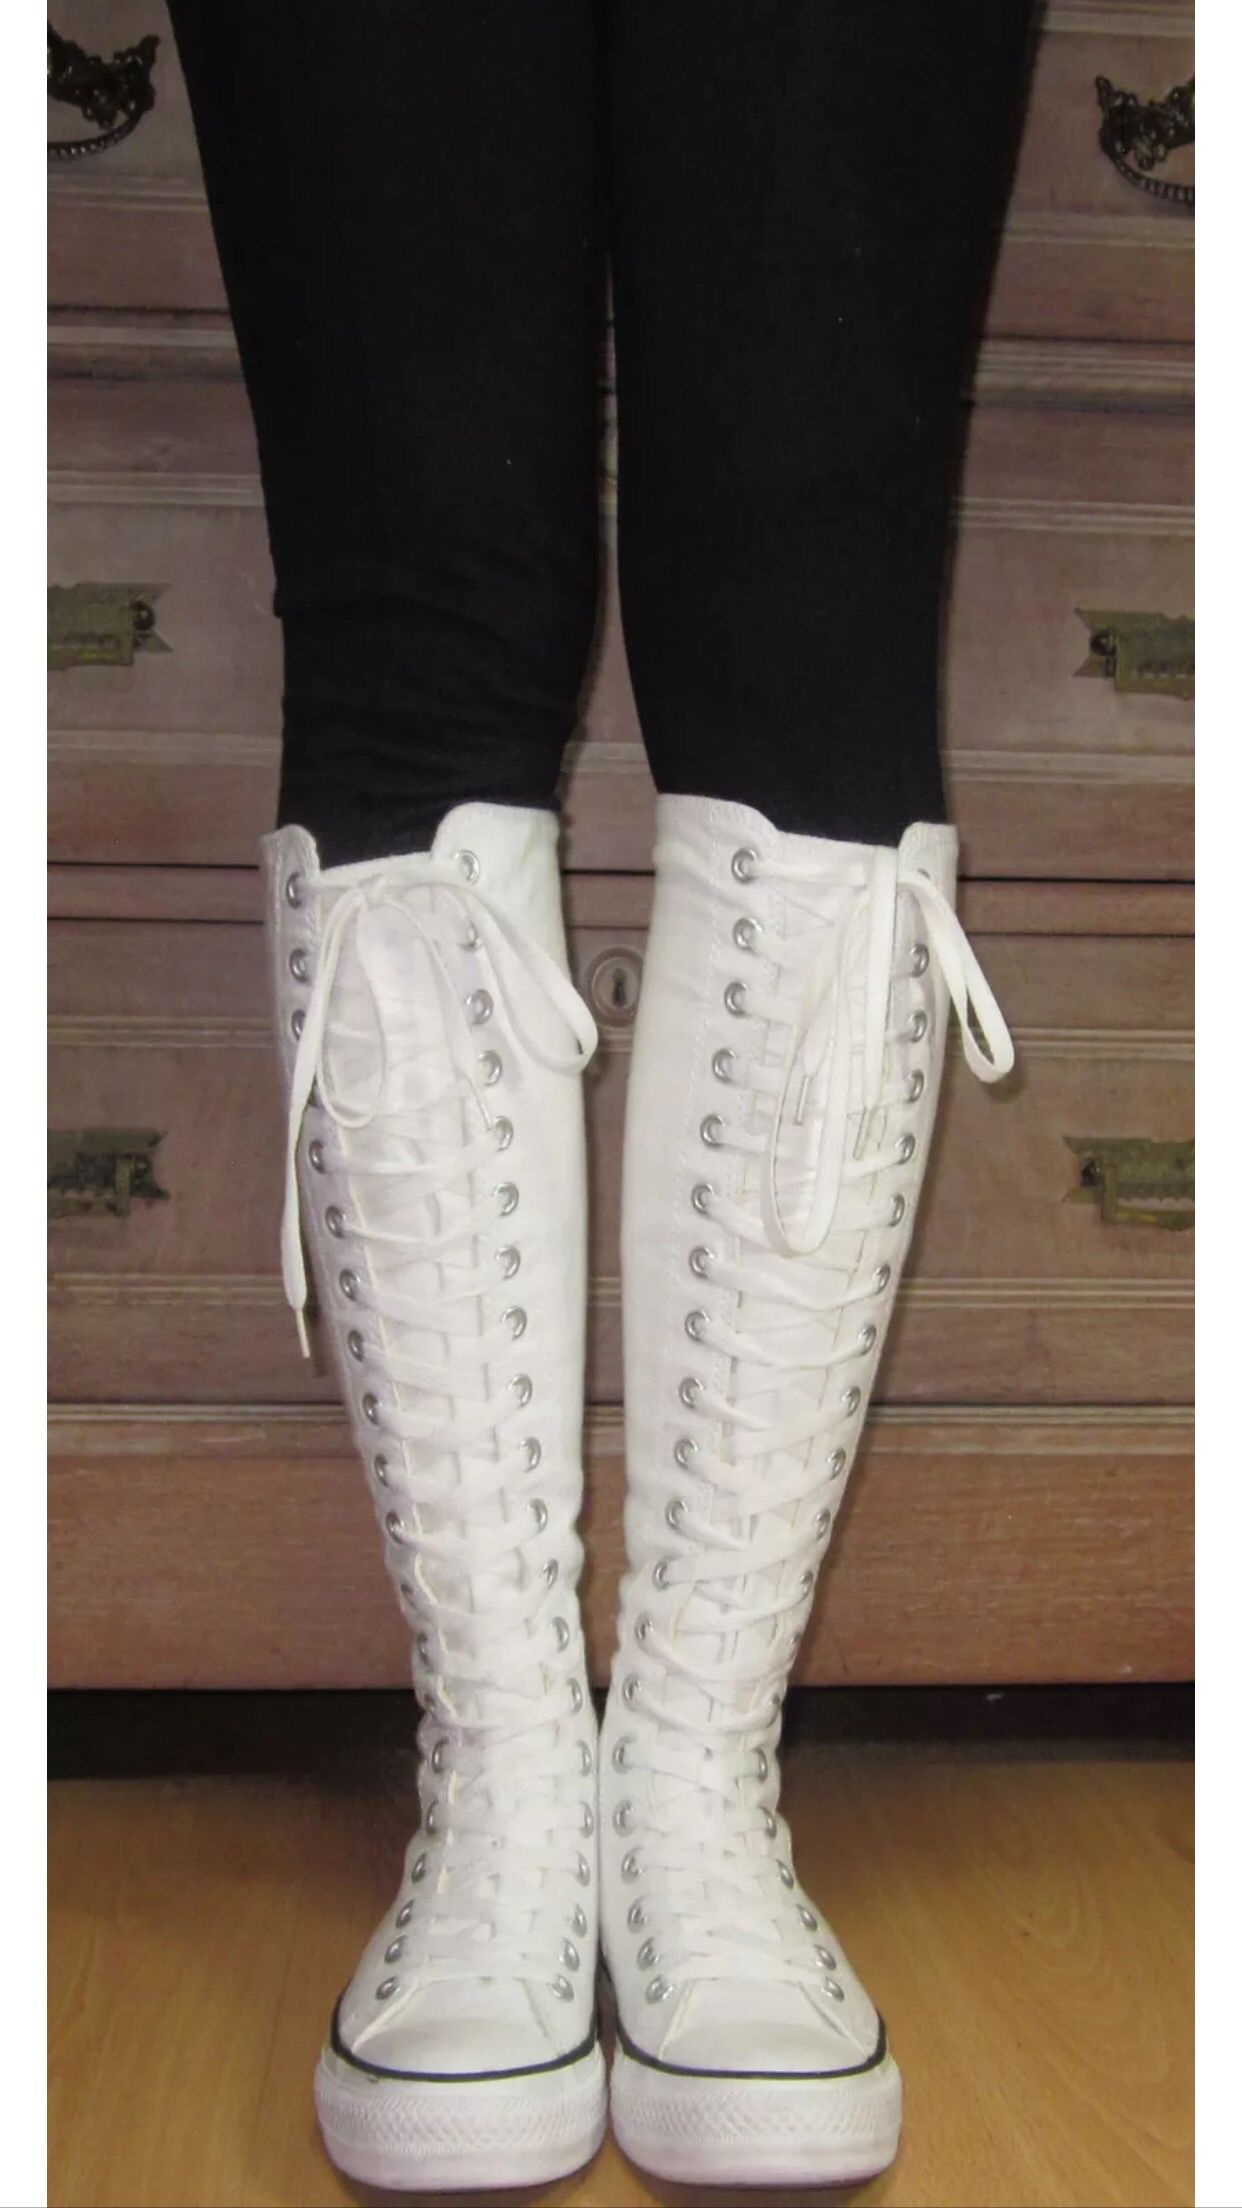 52032b4de346 My 2nd pair of white knee high converse which my black leggings! They  contrast so much